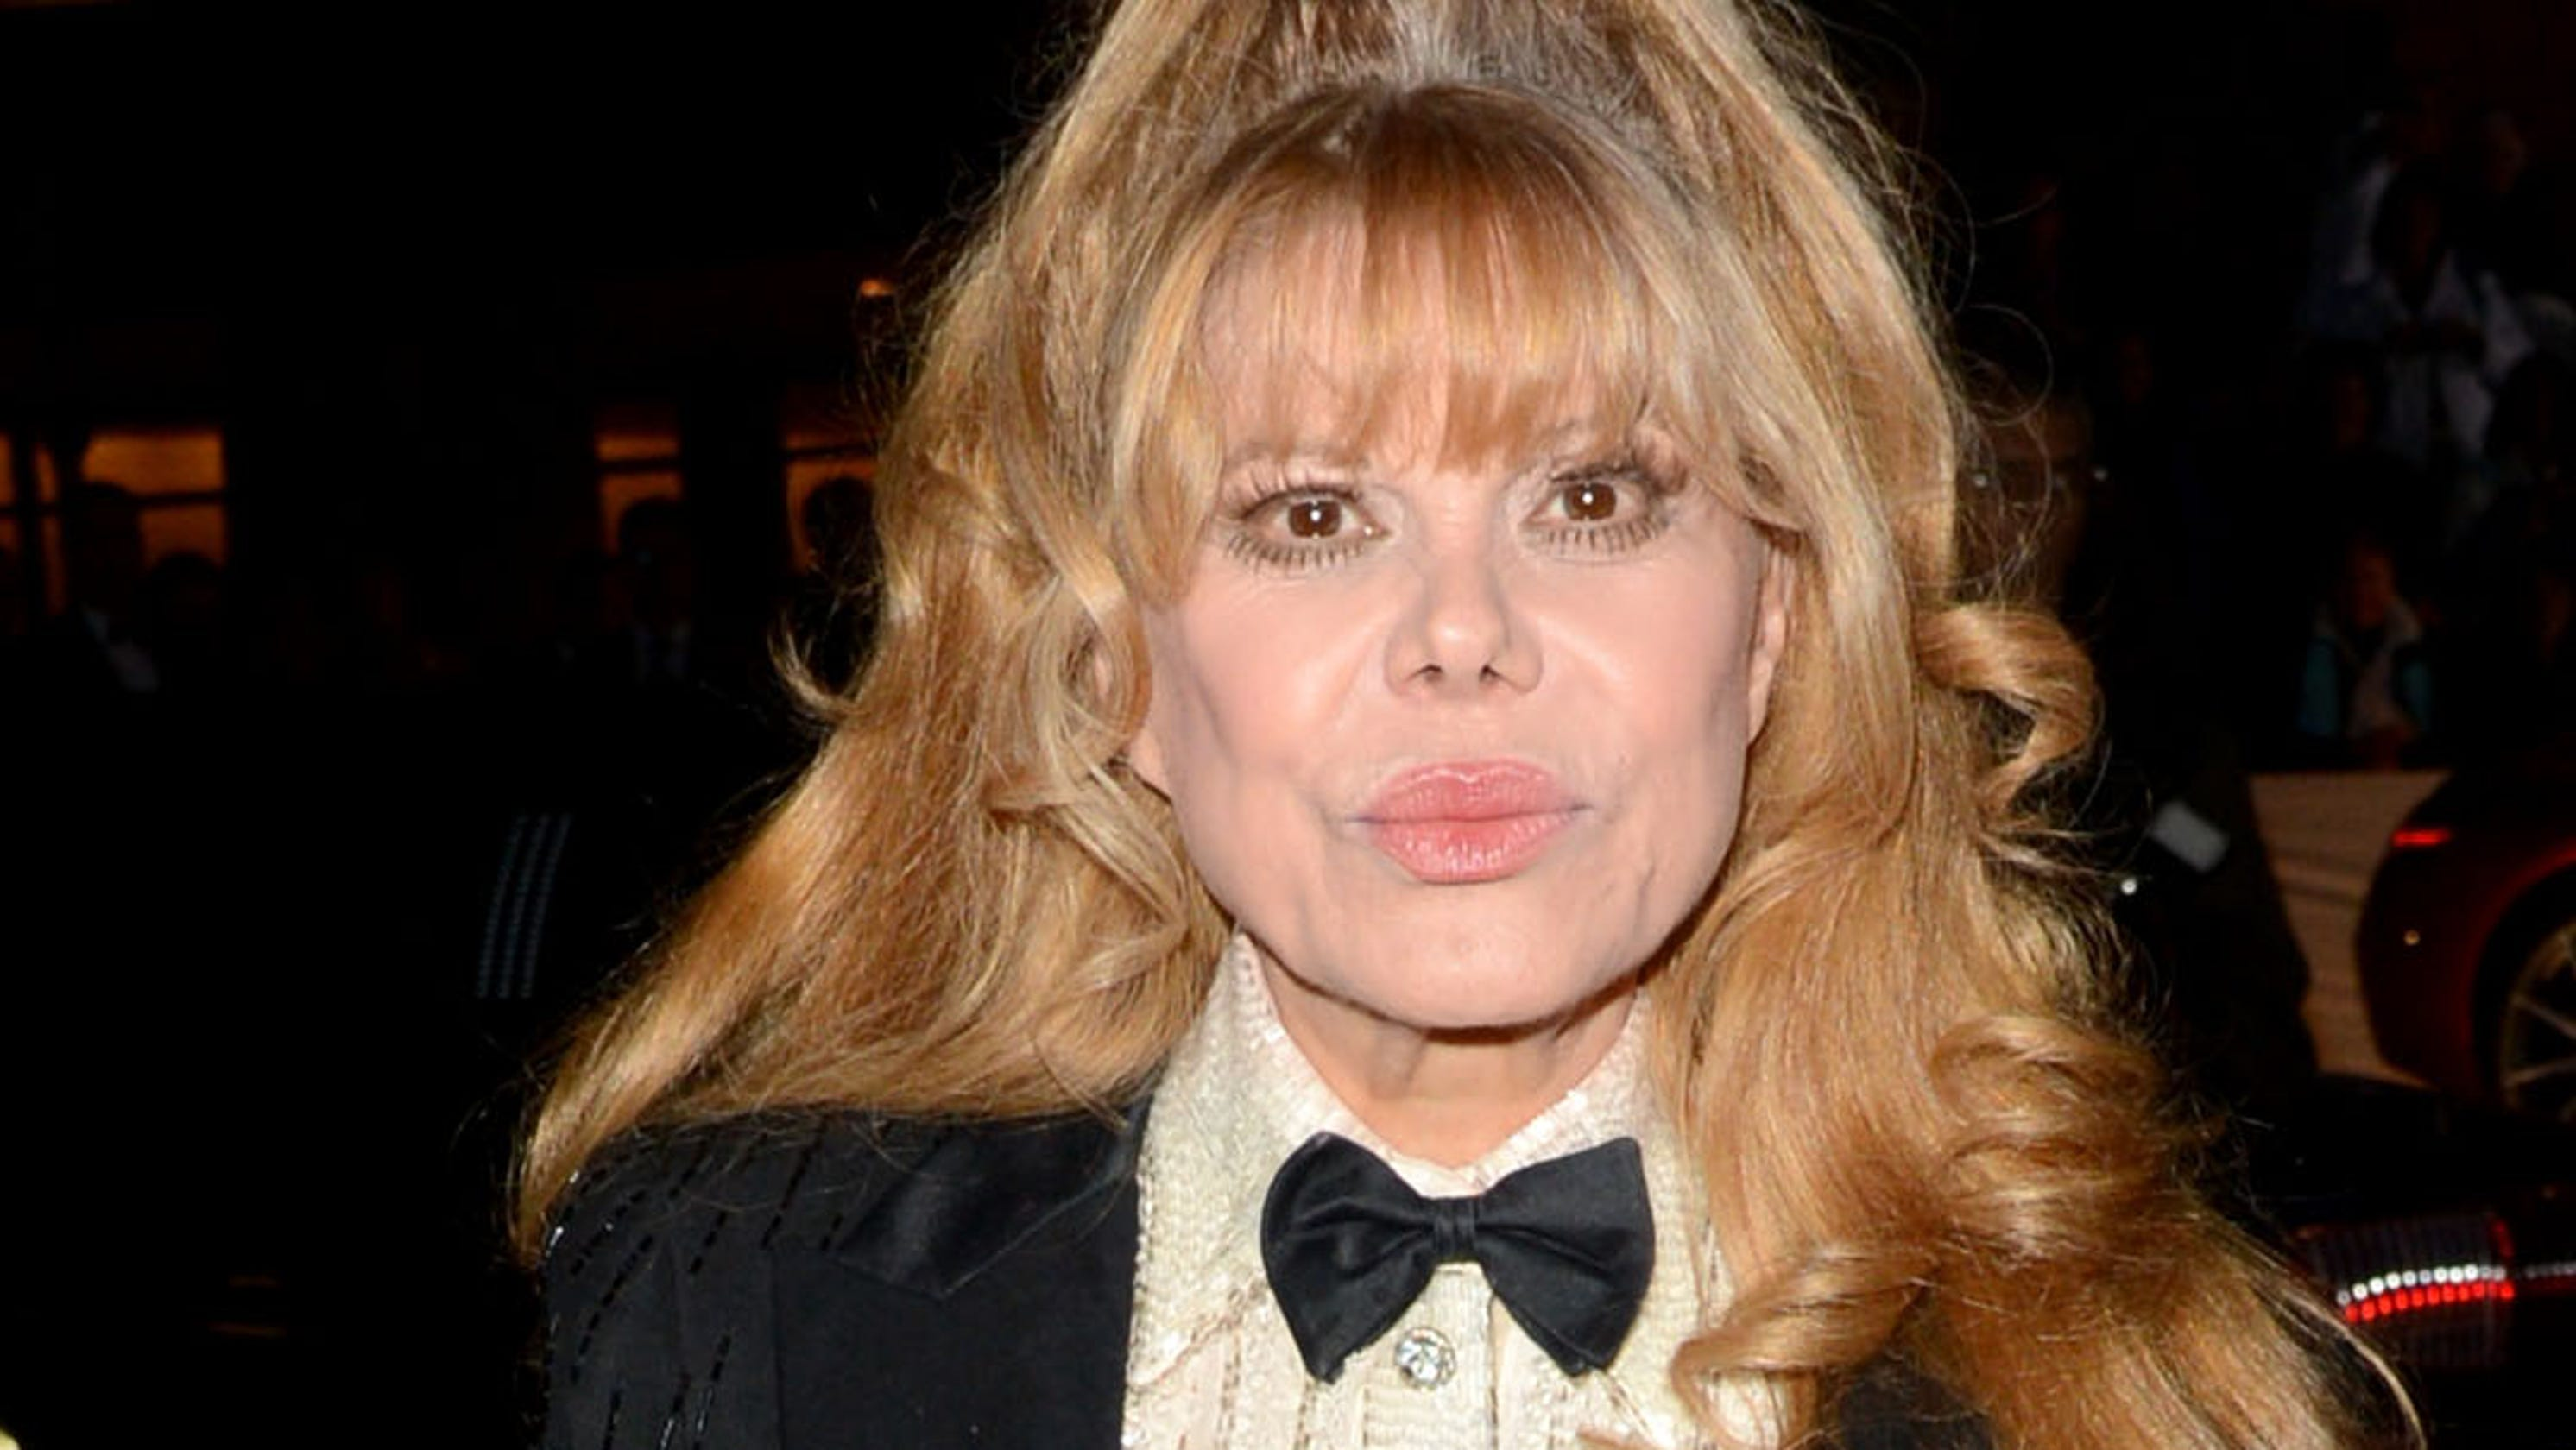 Charo on husband Kjell Rasten's death: 'Suicide is not the answer'